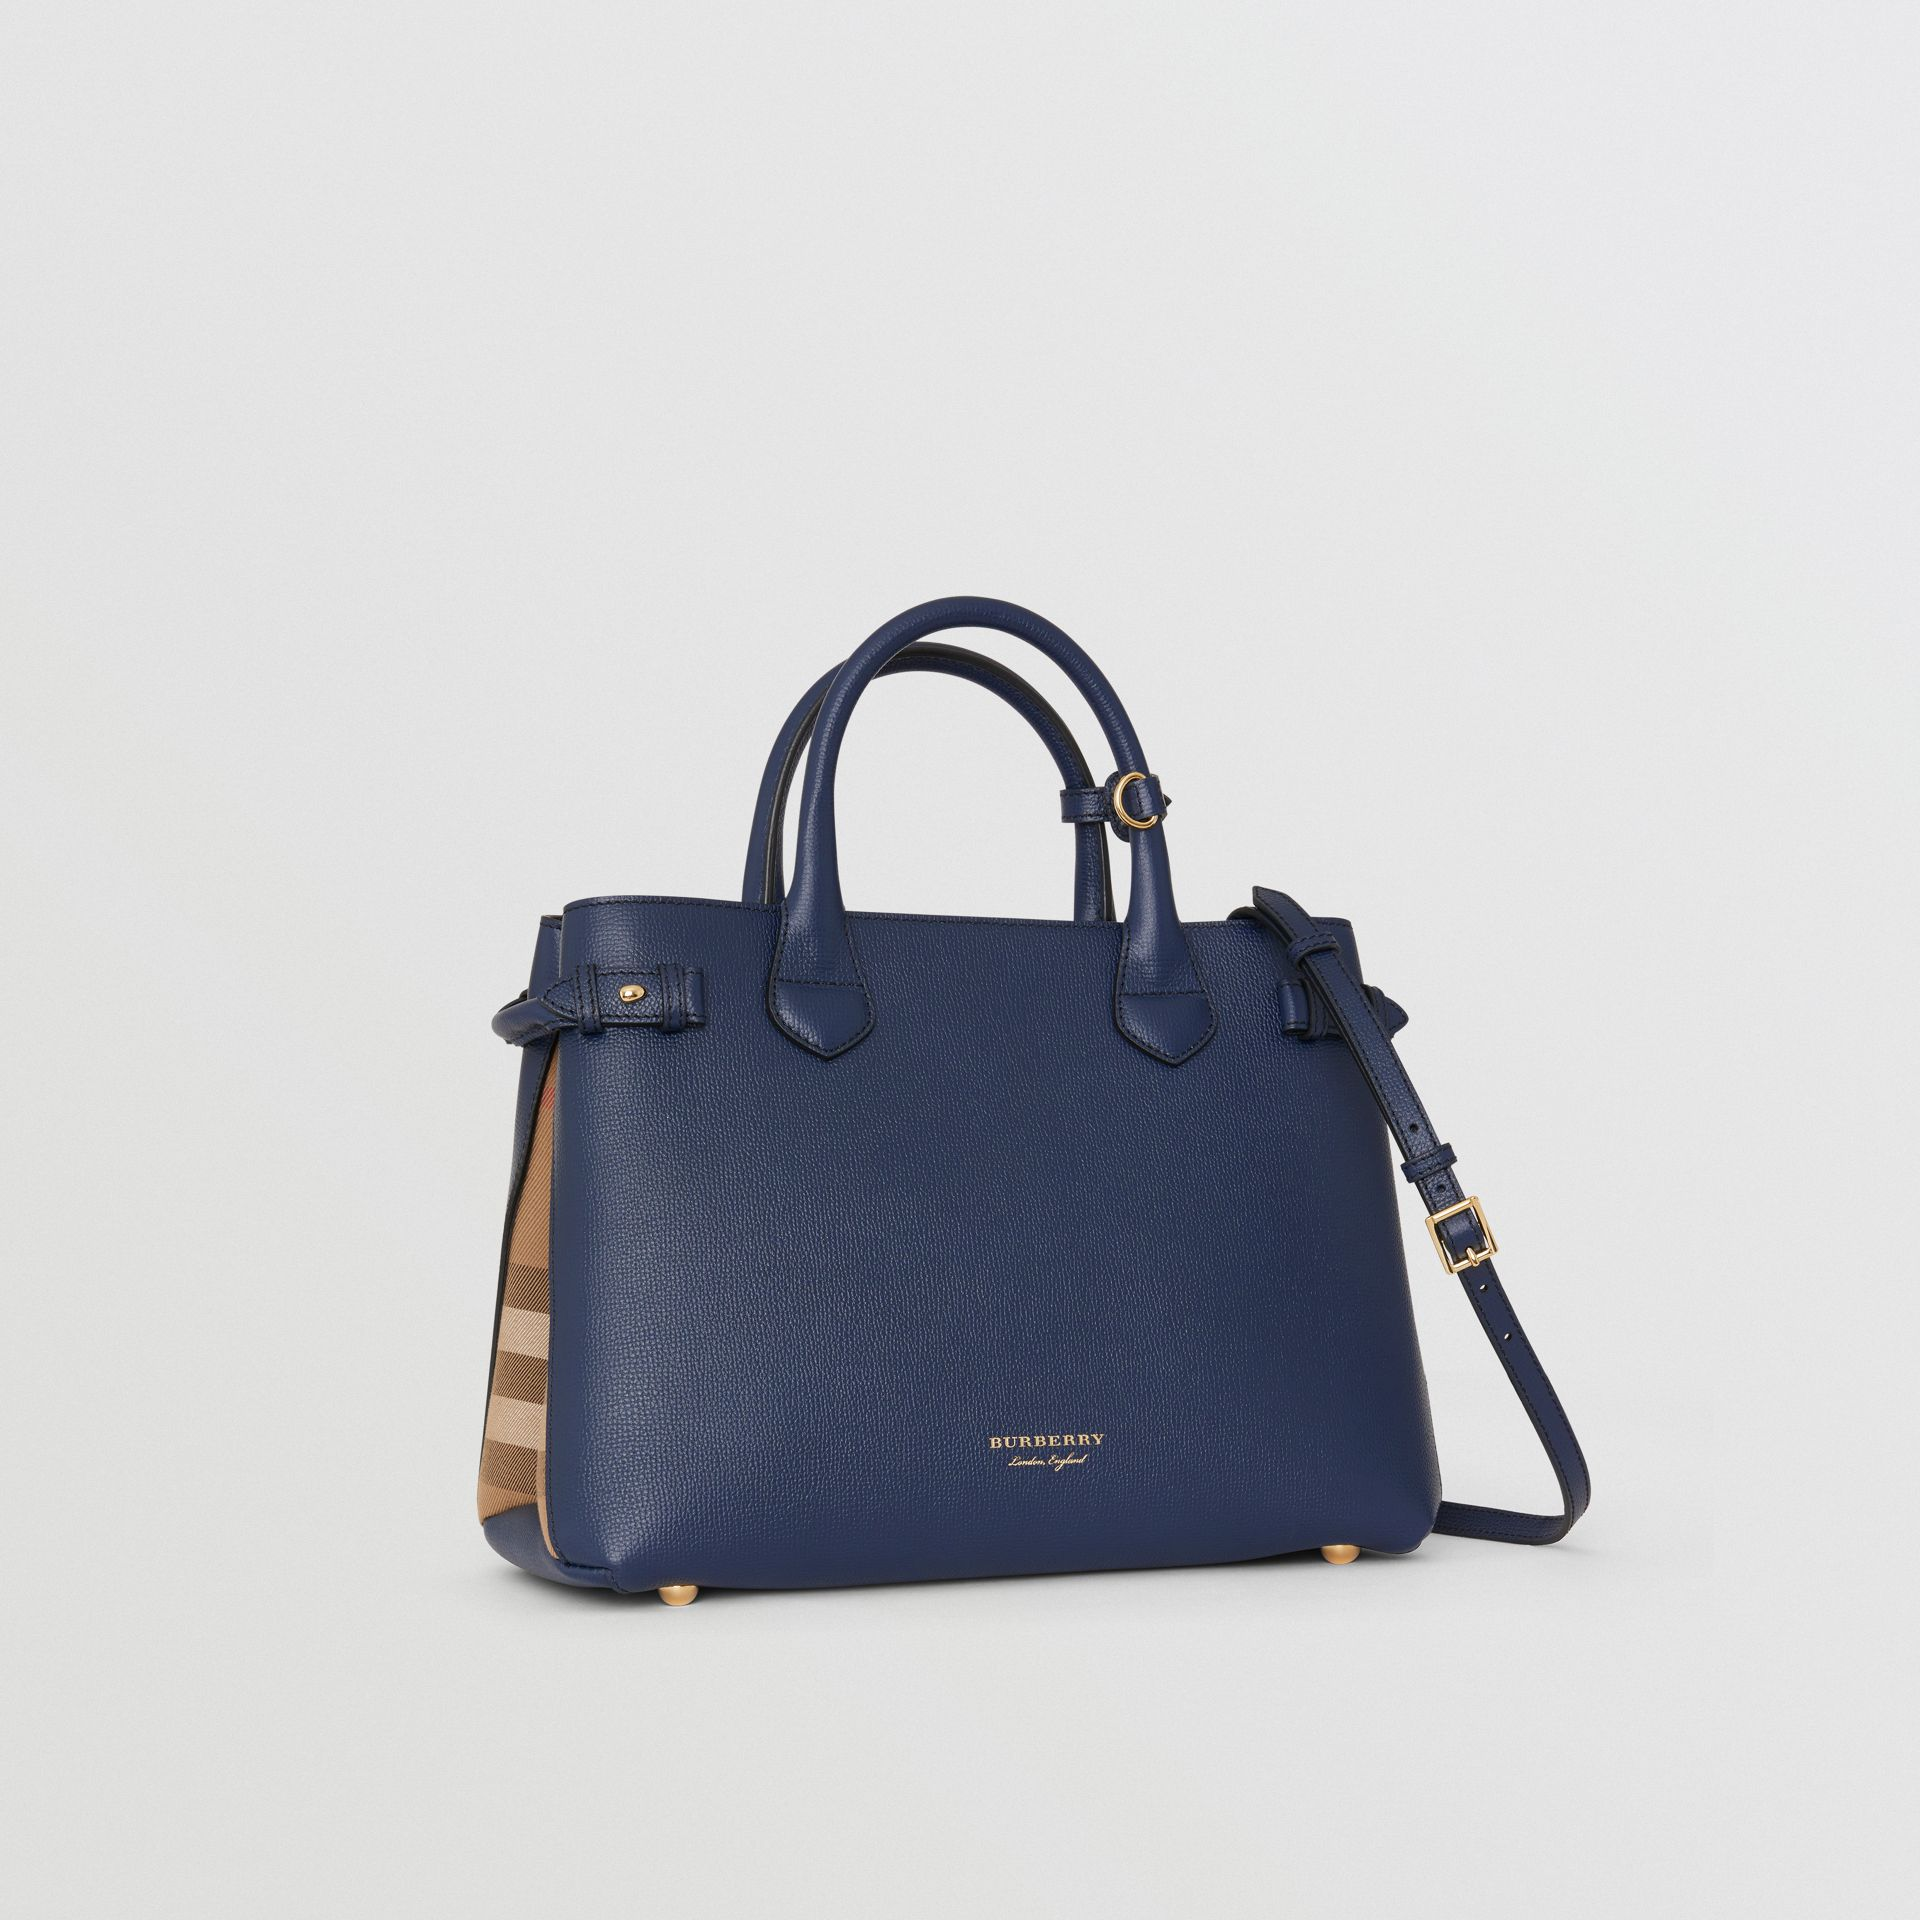 Sac The Banner medium en cuir et coton House check (Bleu Encre) - Femme | Burberry - photo de la galerie 6